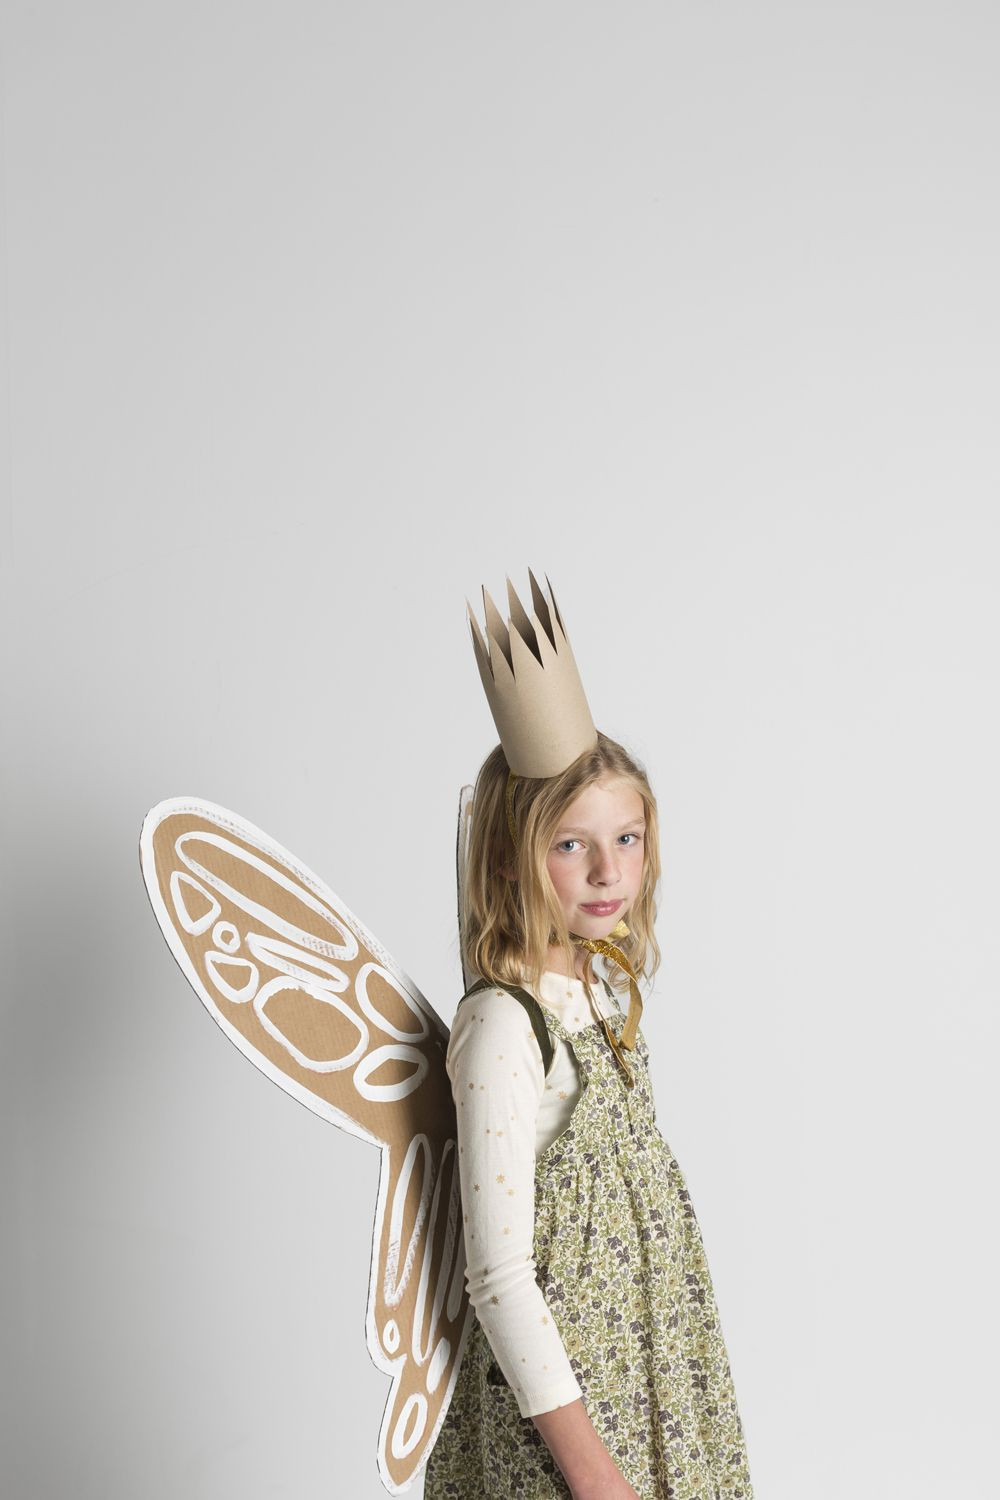 DIY Fairy Costumes For Kids  Garden Fairy with DIY cardboard wings and crown